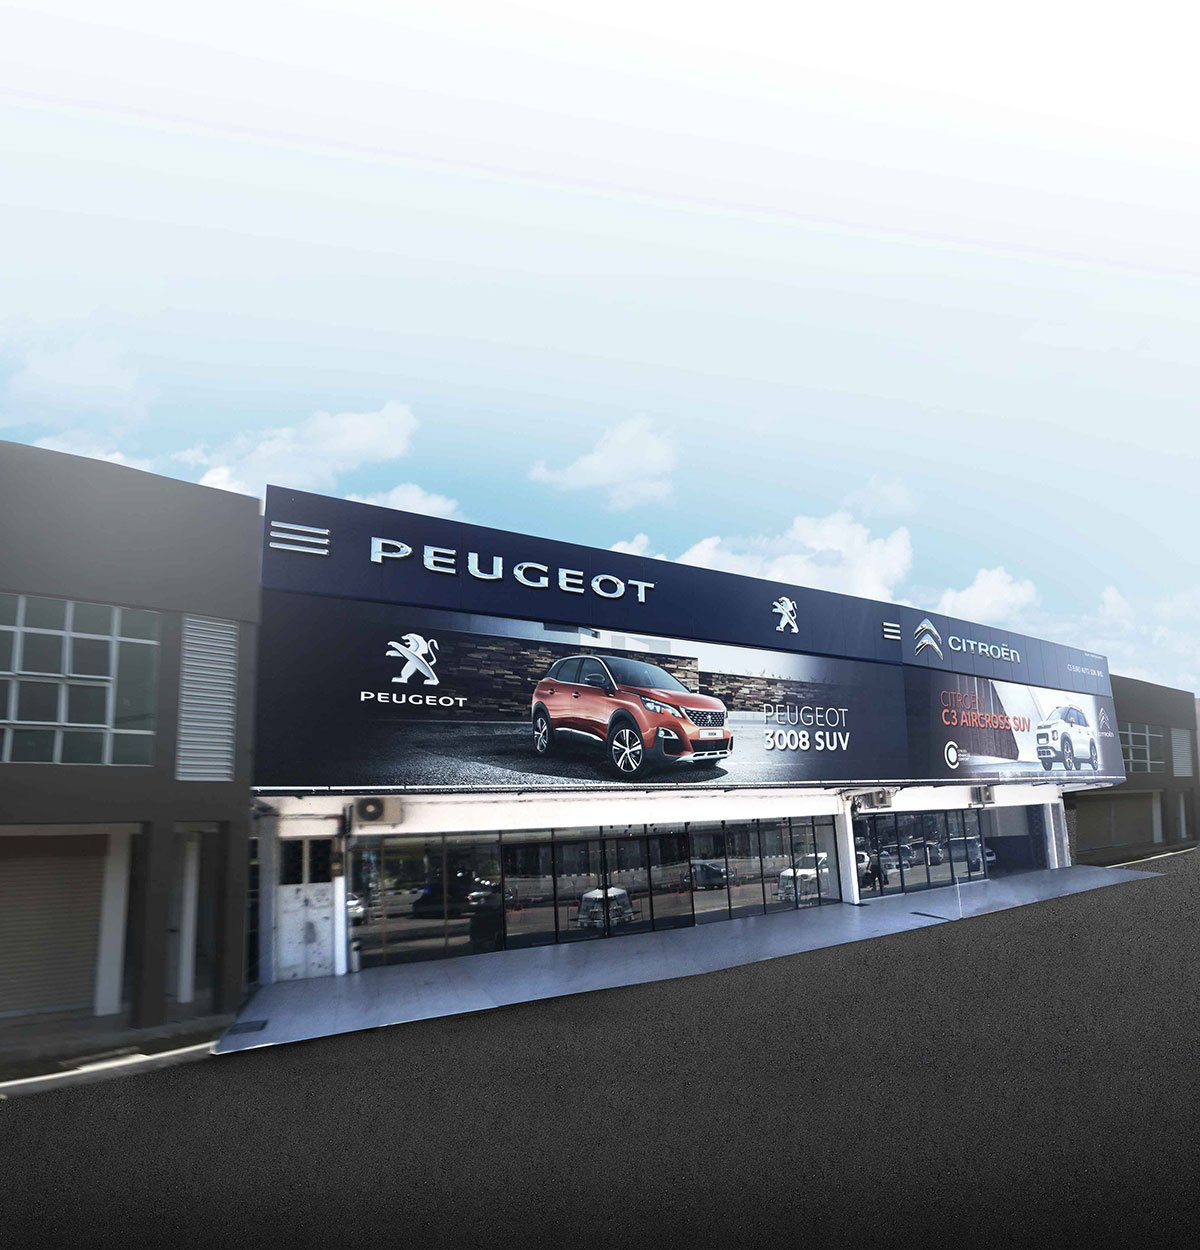 NEW PEUGEOT / CITROËN 3S OUTLET OPENS IN ALOR SETAR